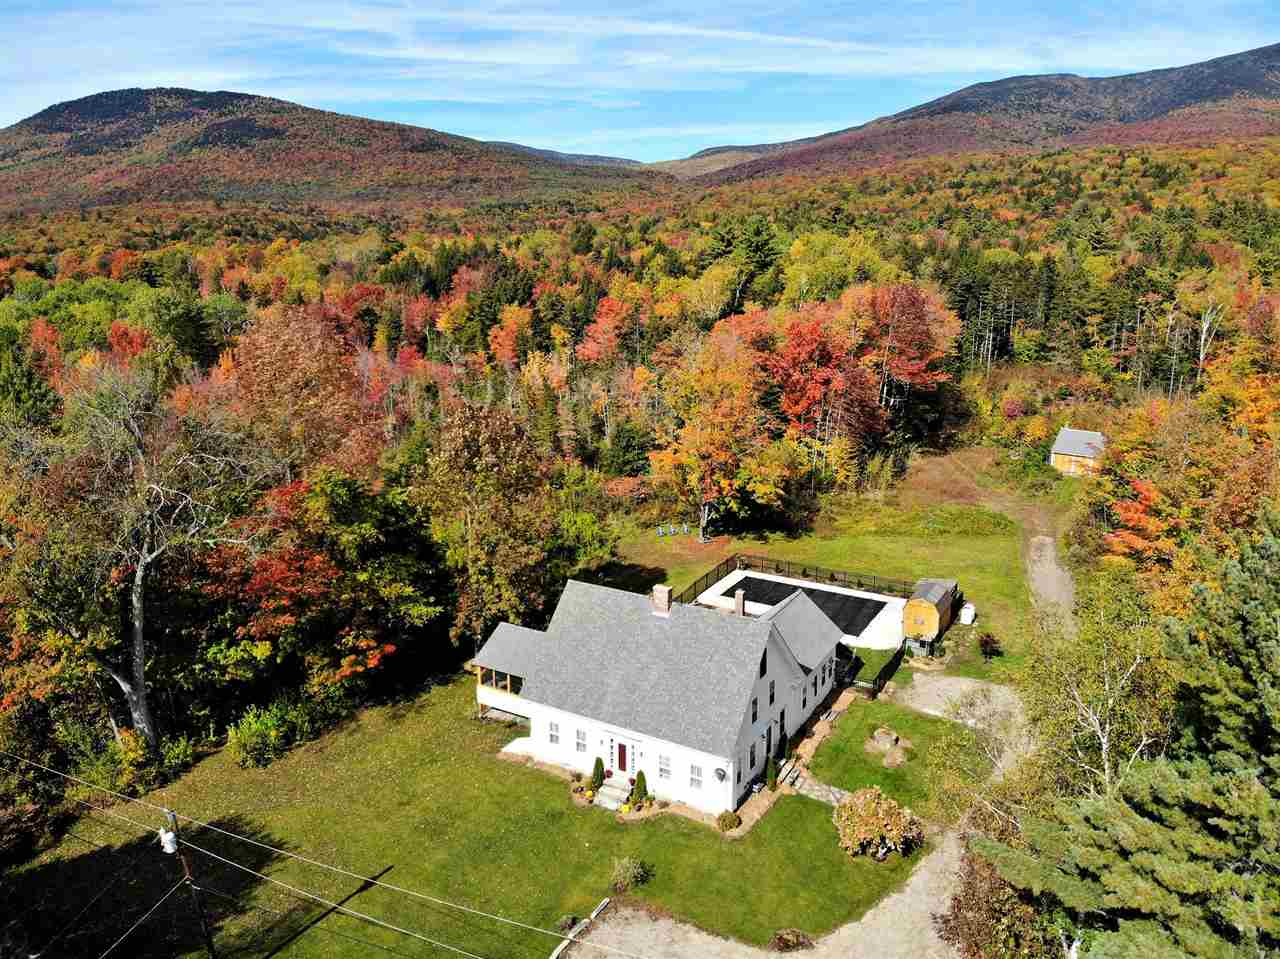 MLS 4761528: 194 Whiteface Intervale Road, Sandwich NH